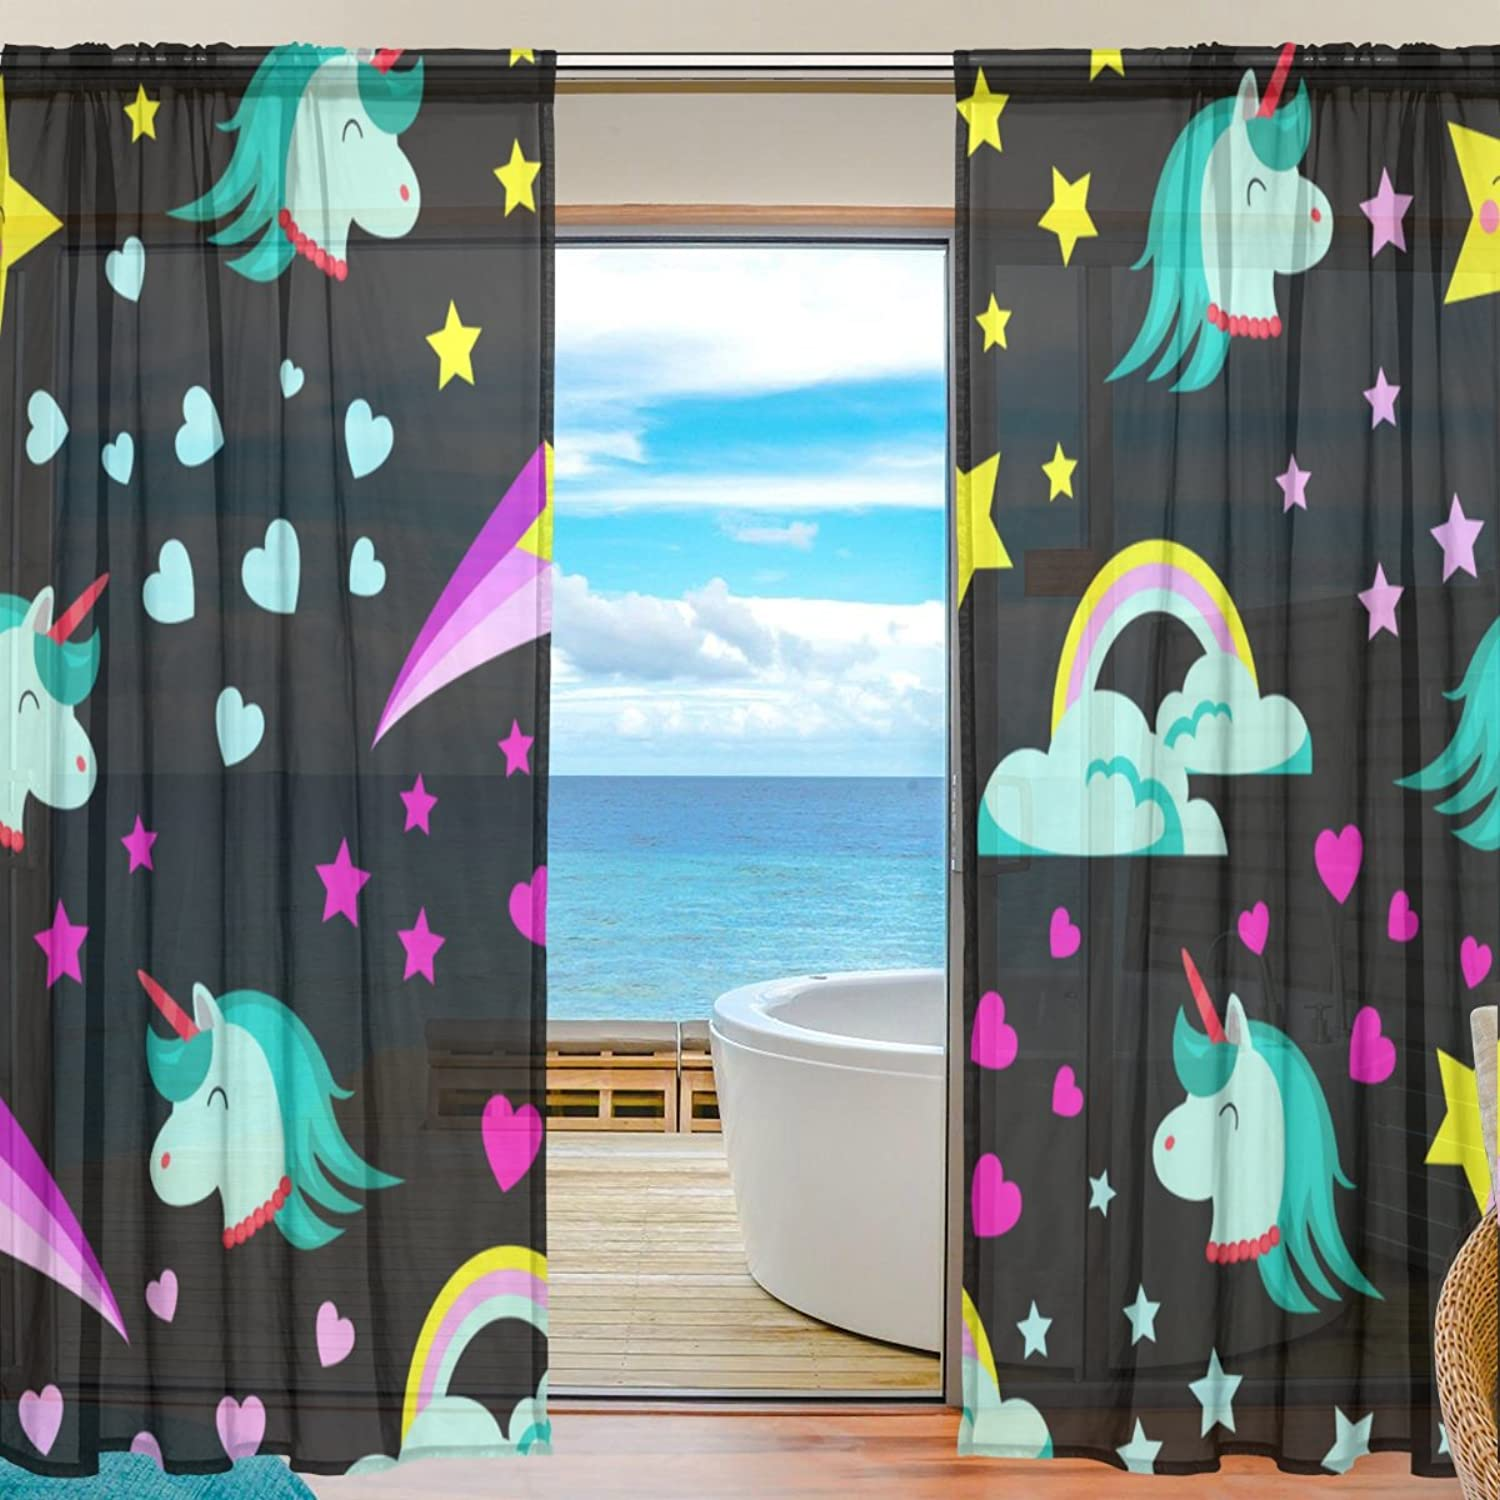 Vantaso Sheer Curtains 78 inch Green Unicorn with Twinkle Stars for Kids Girls Bedroom Living Room Window Decorative 2 Panels